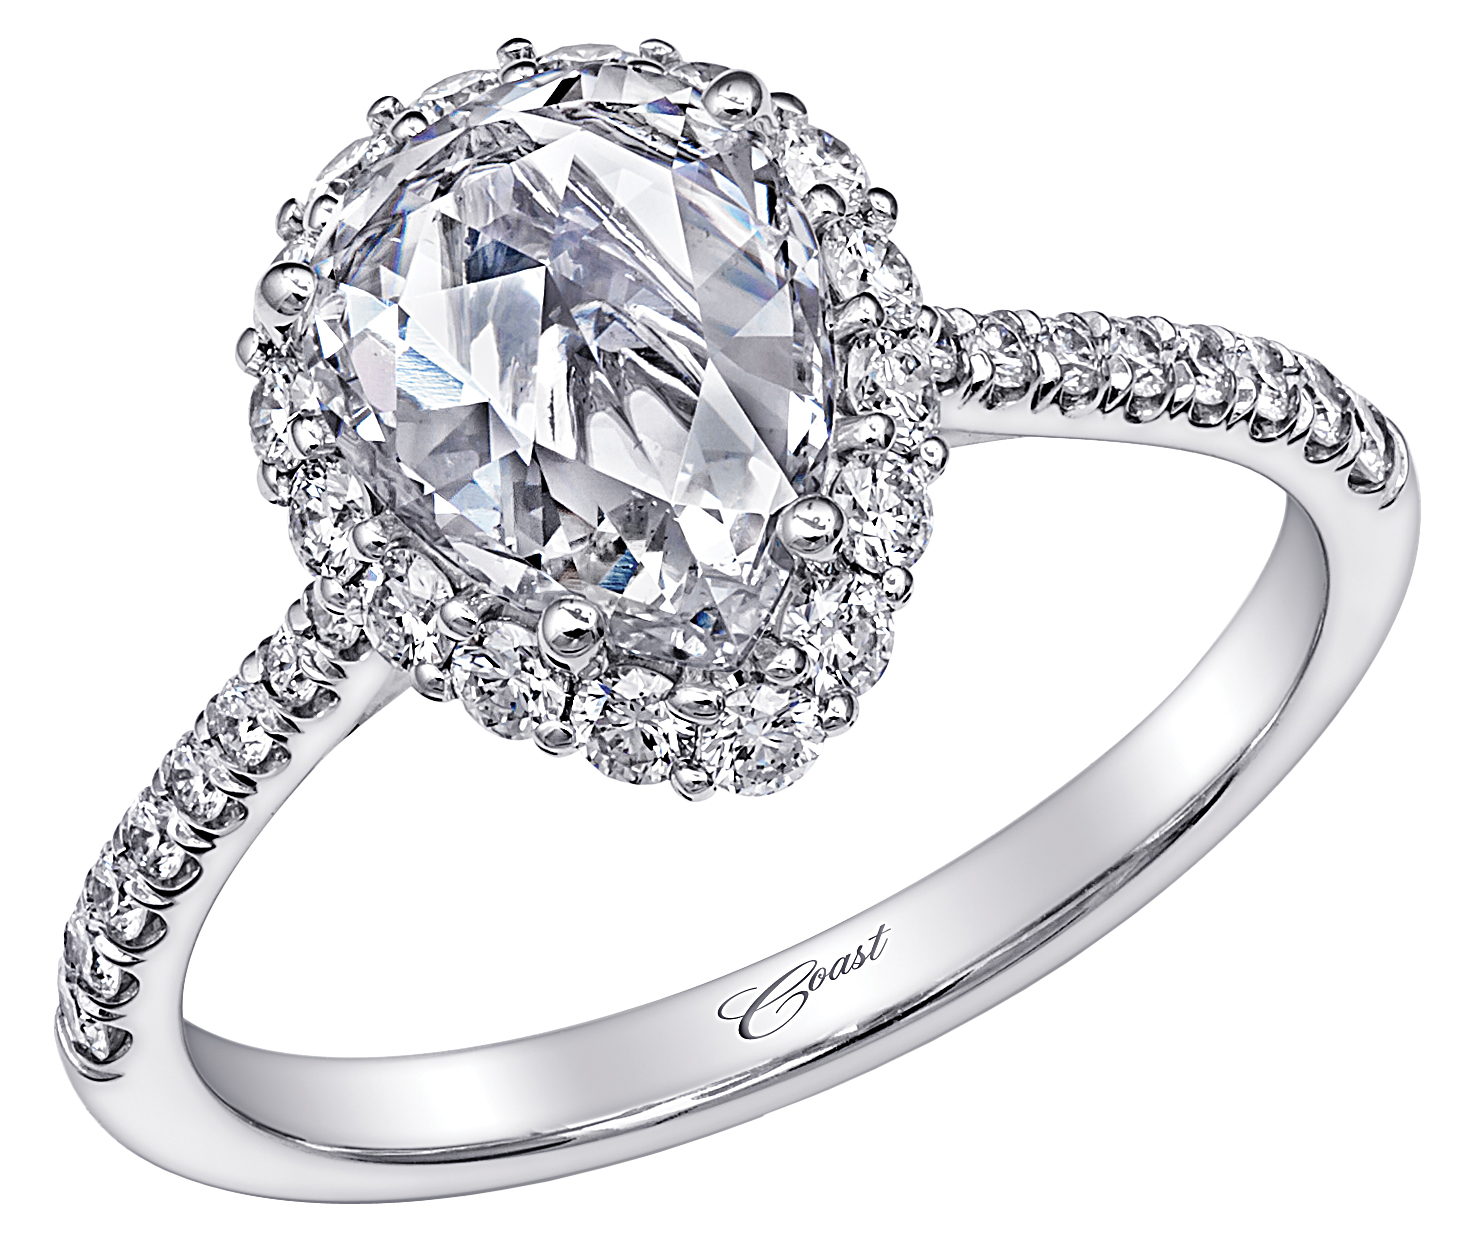 jck0516_feat5_coastdiamond_ring_hrvrtcc.jpg